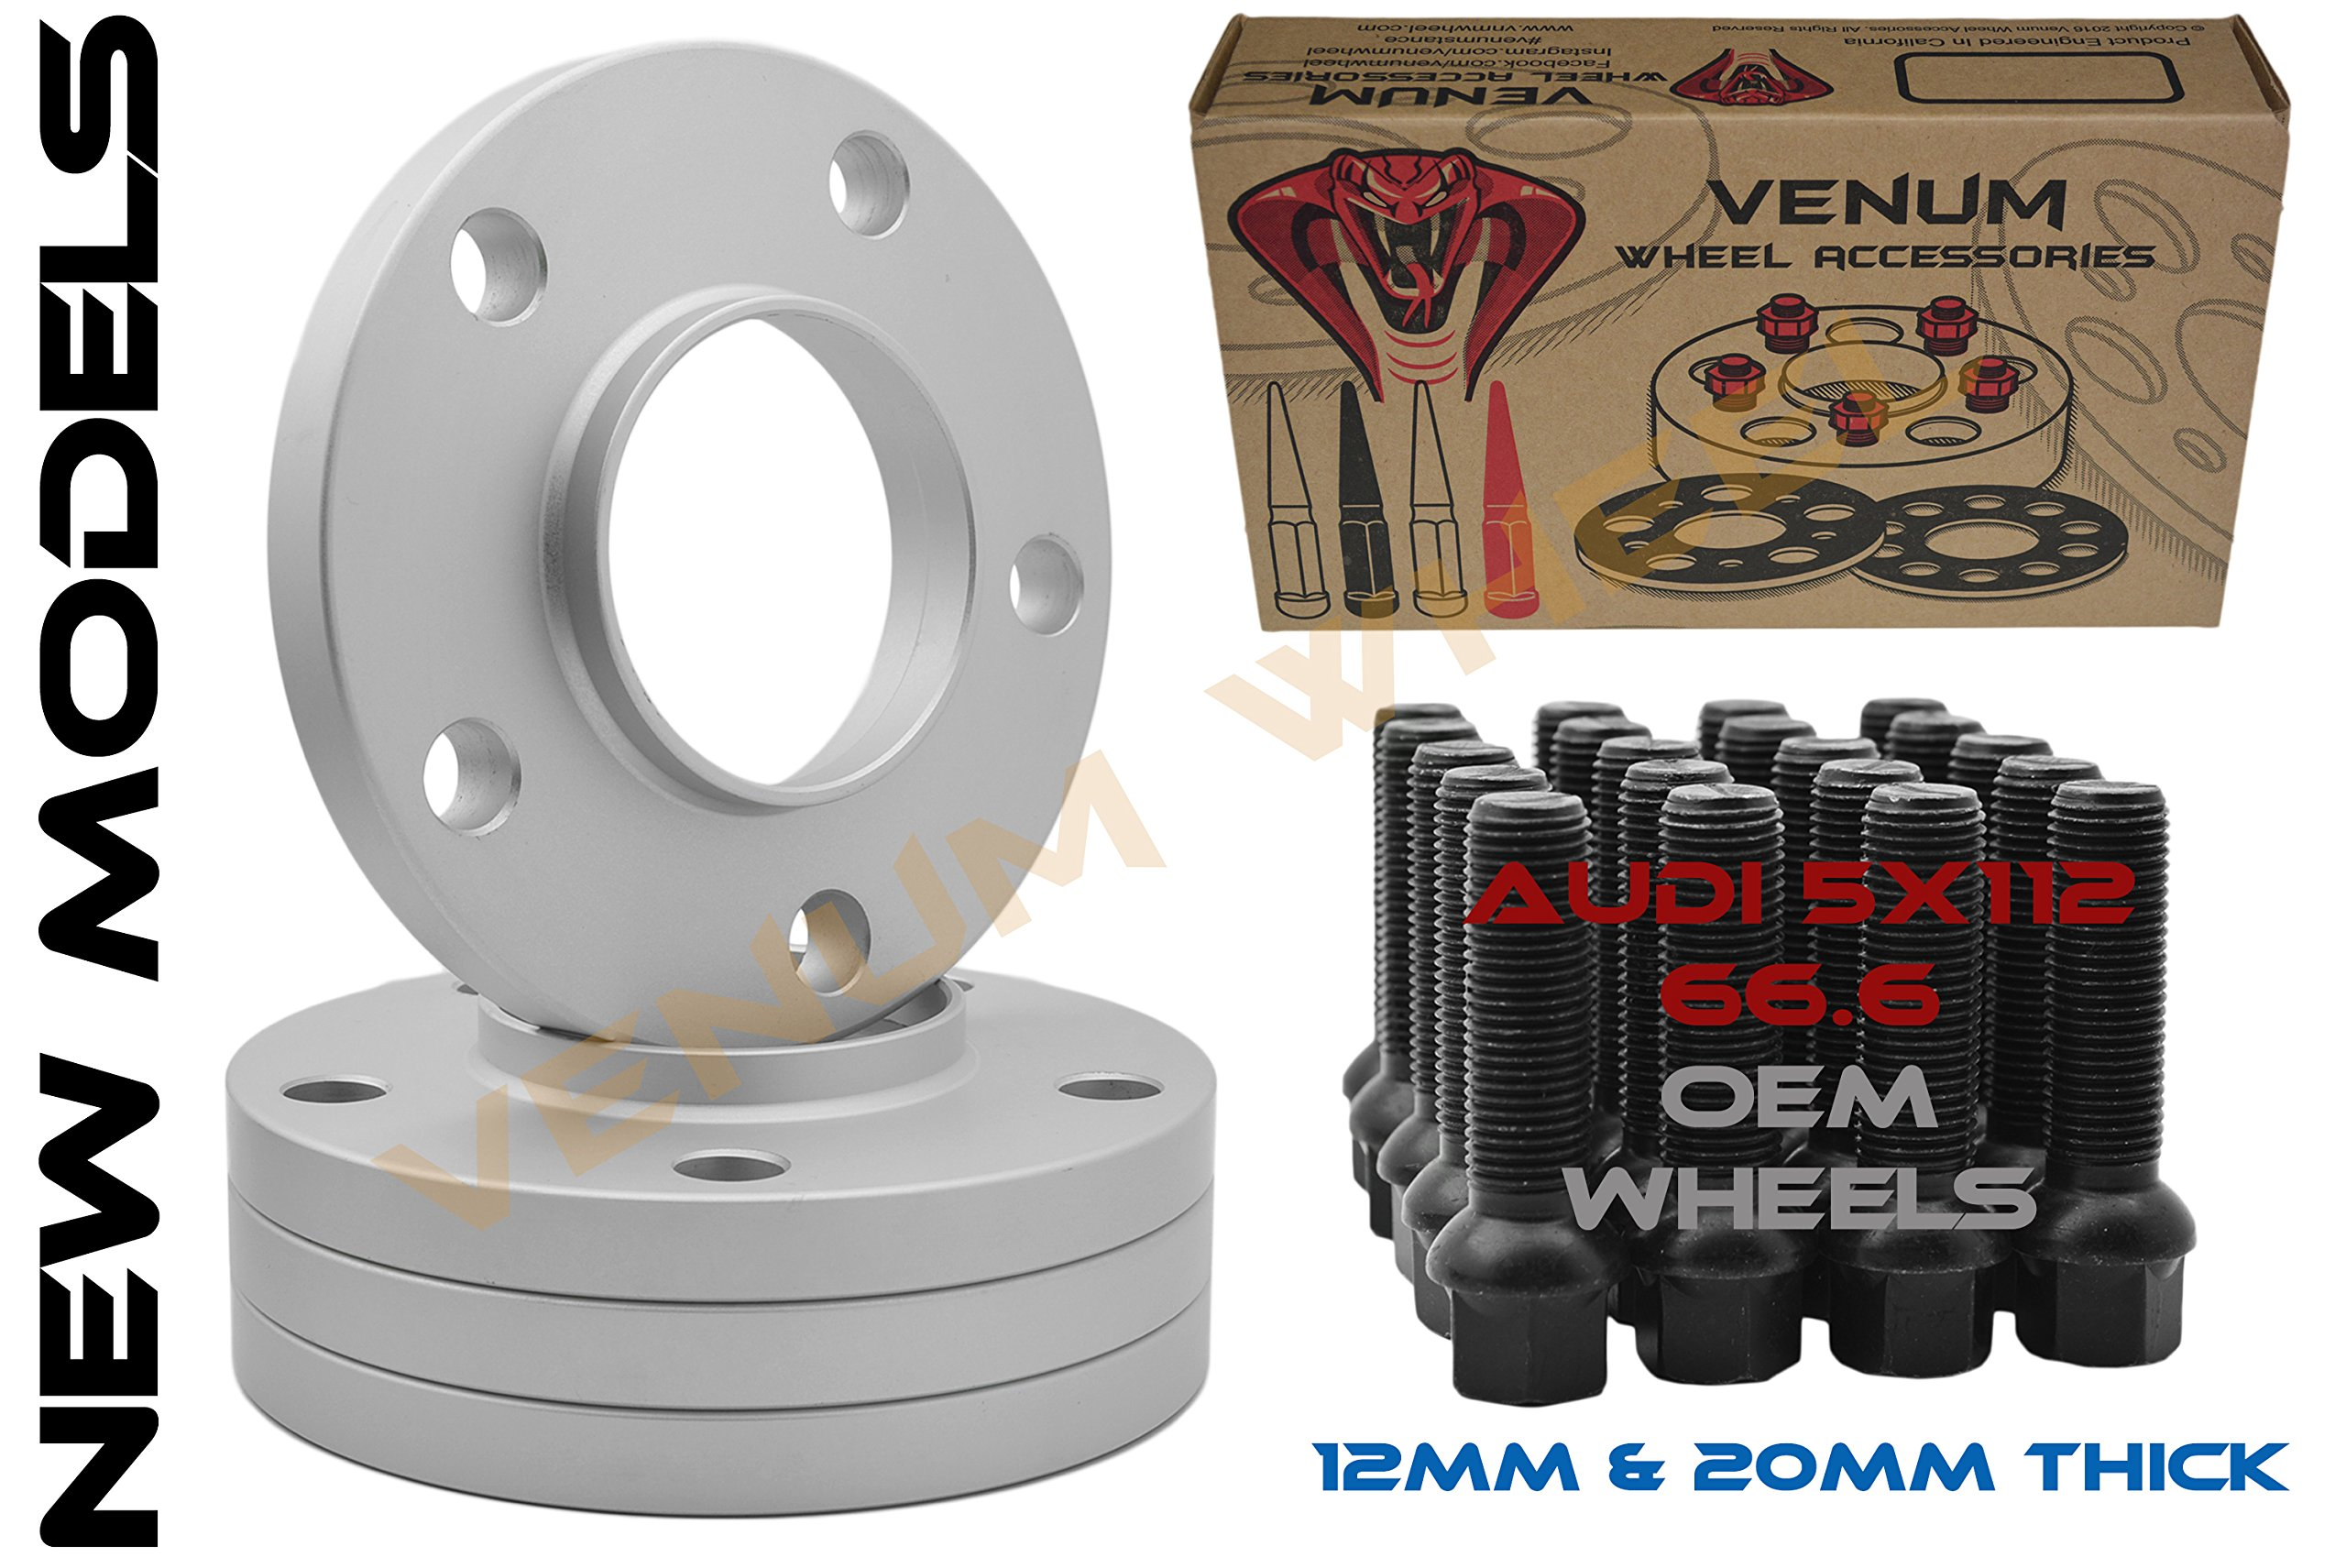 Audi Wheel Spacers 12mm & 20mm 66.56 HUB Wheel Spacers 5x112 | 2009-2018 A4 A5 A6 A7 A8 All Road S4 S5 S6 S7 RS5 RS7 Q5 SQ5 W/ OEM Wheels